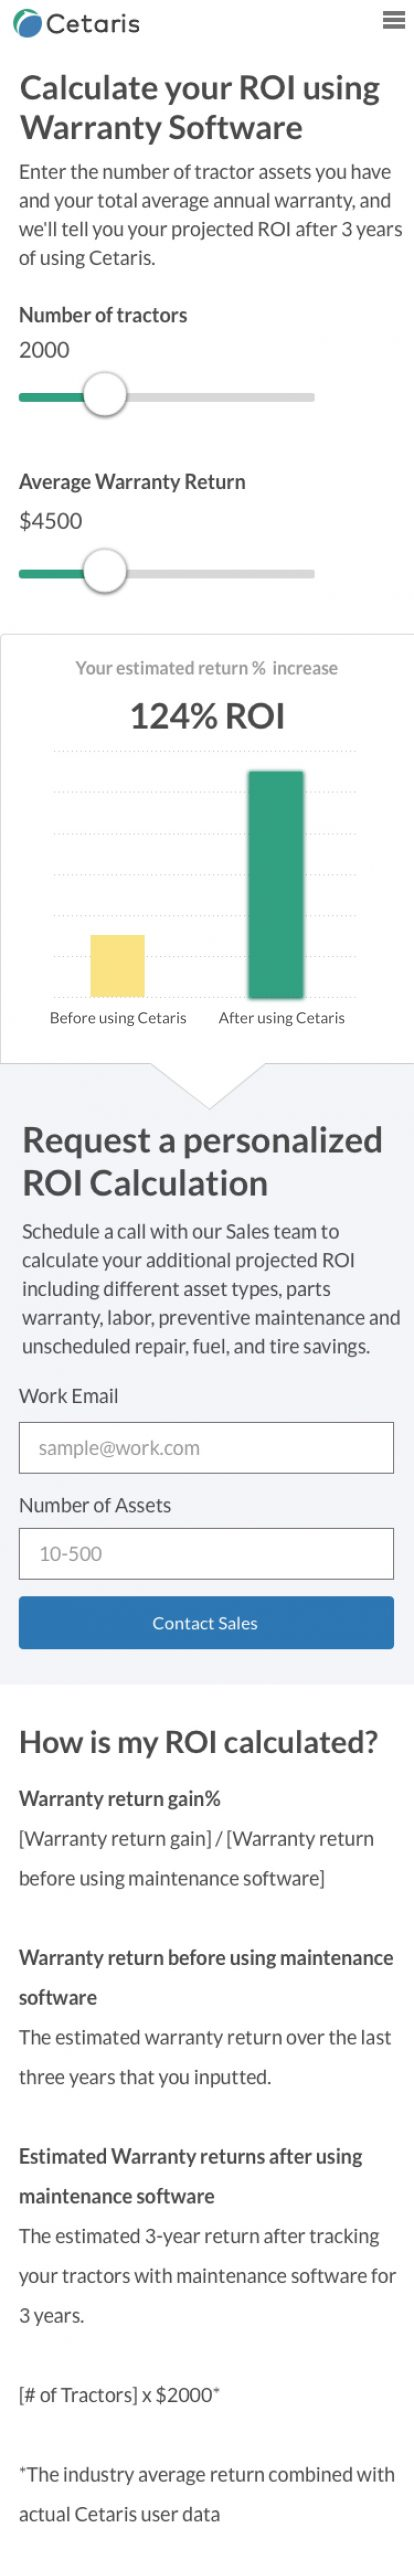 ROI Calculator mobile